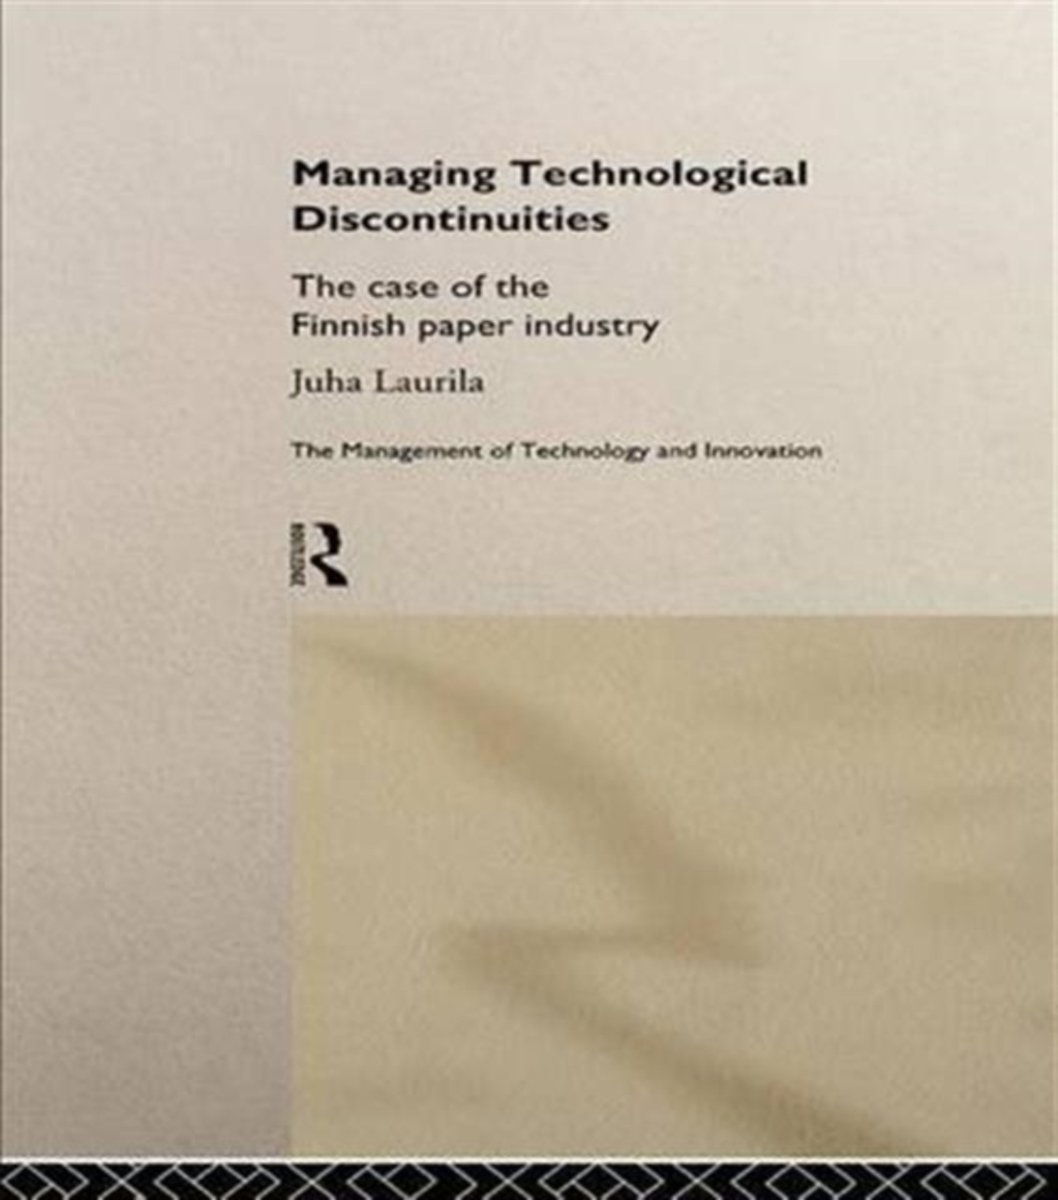 Managing Technological Discontinuities